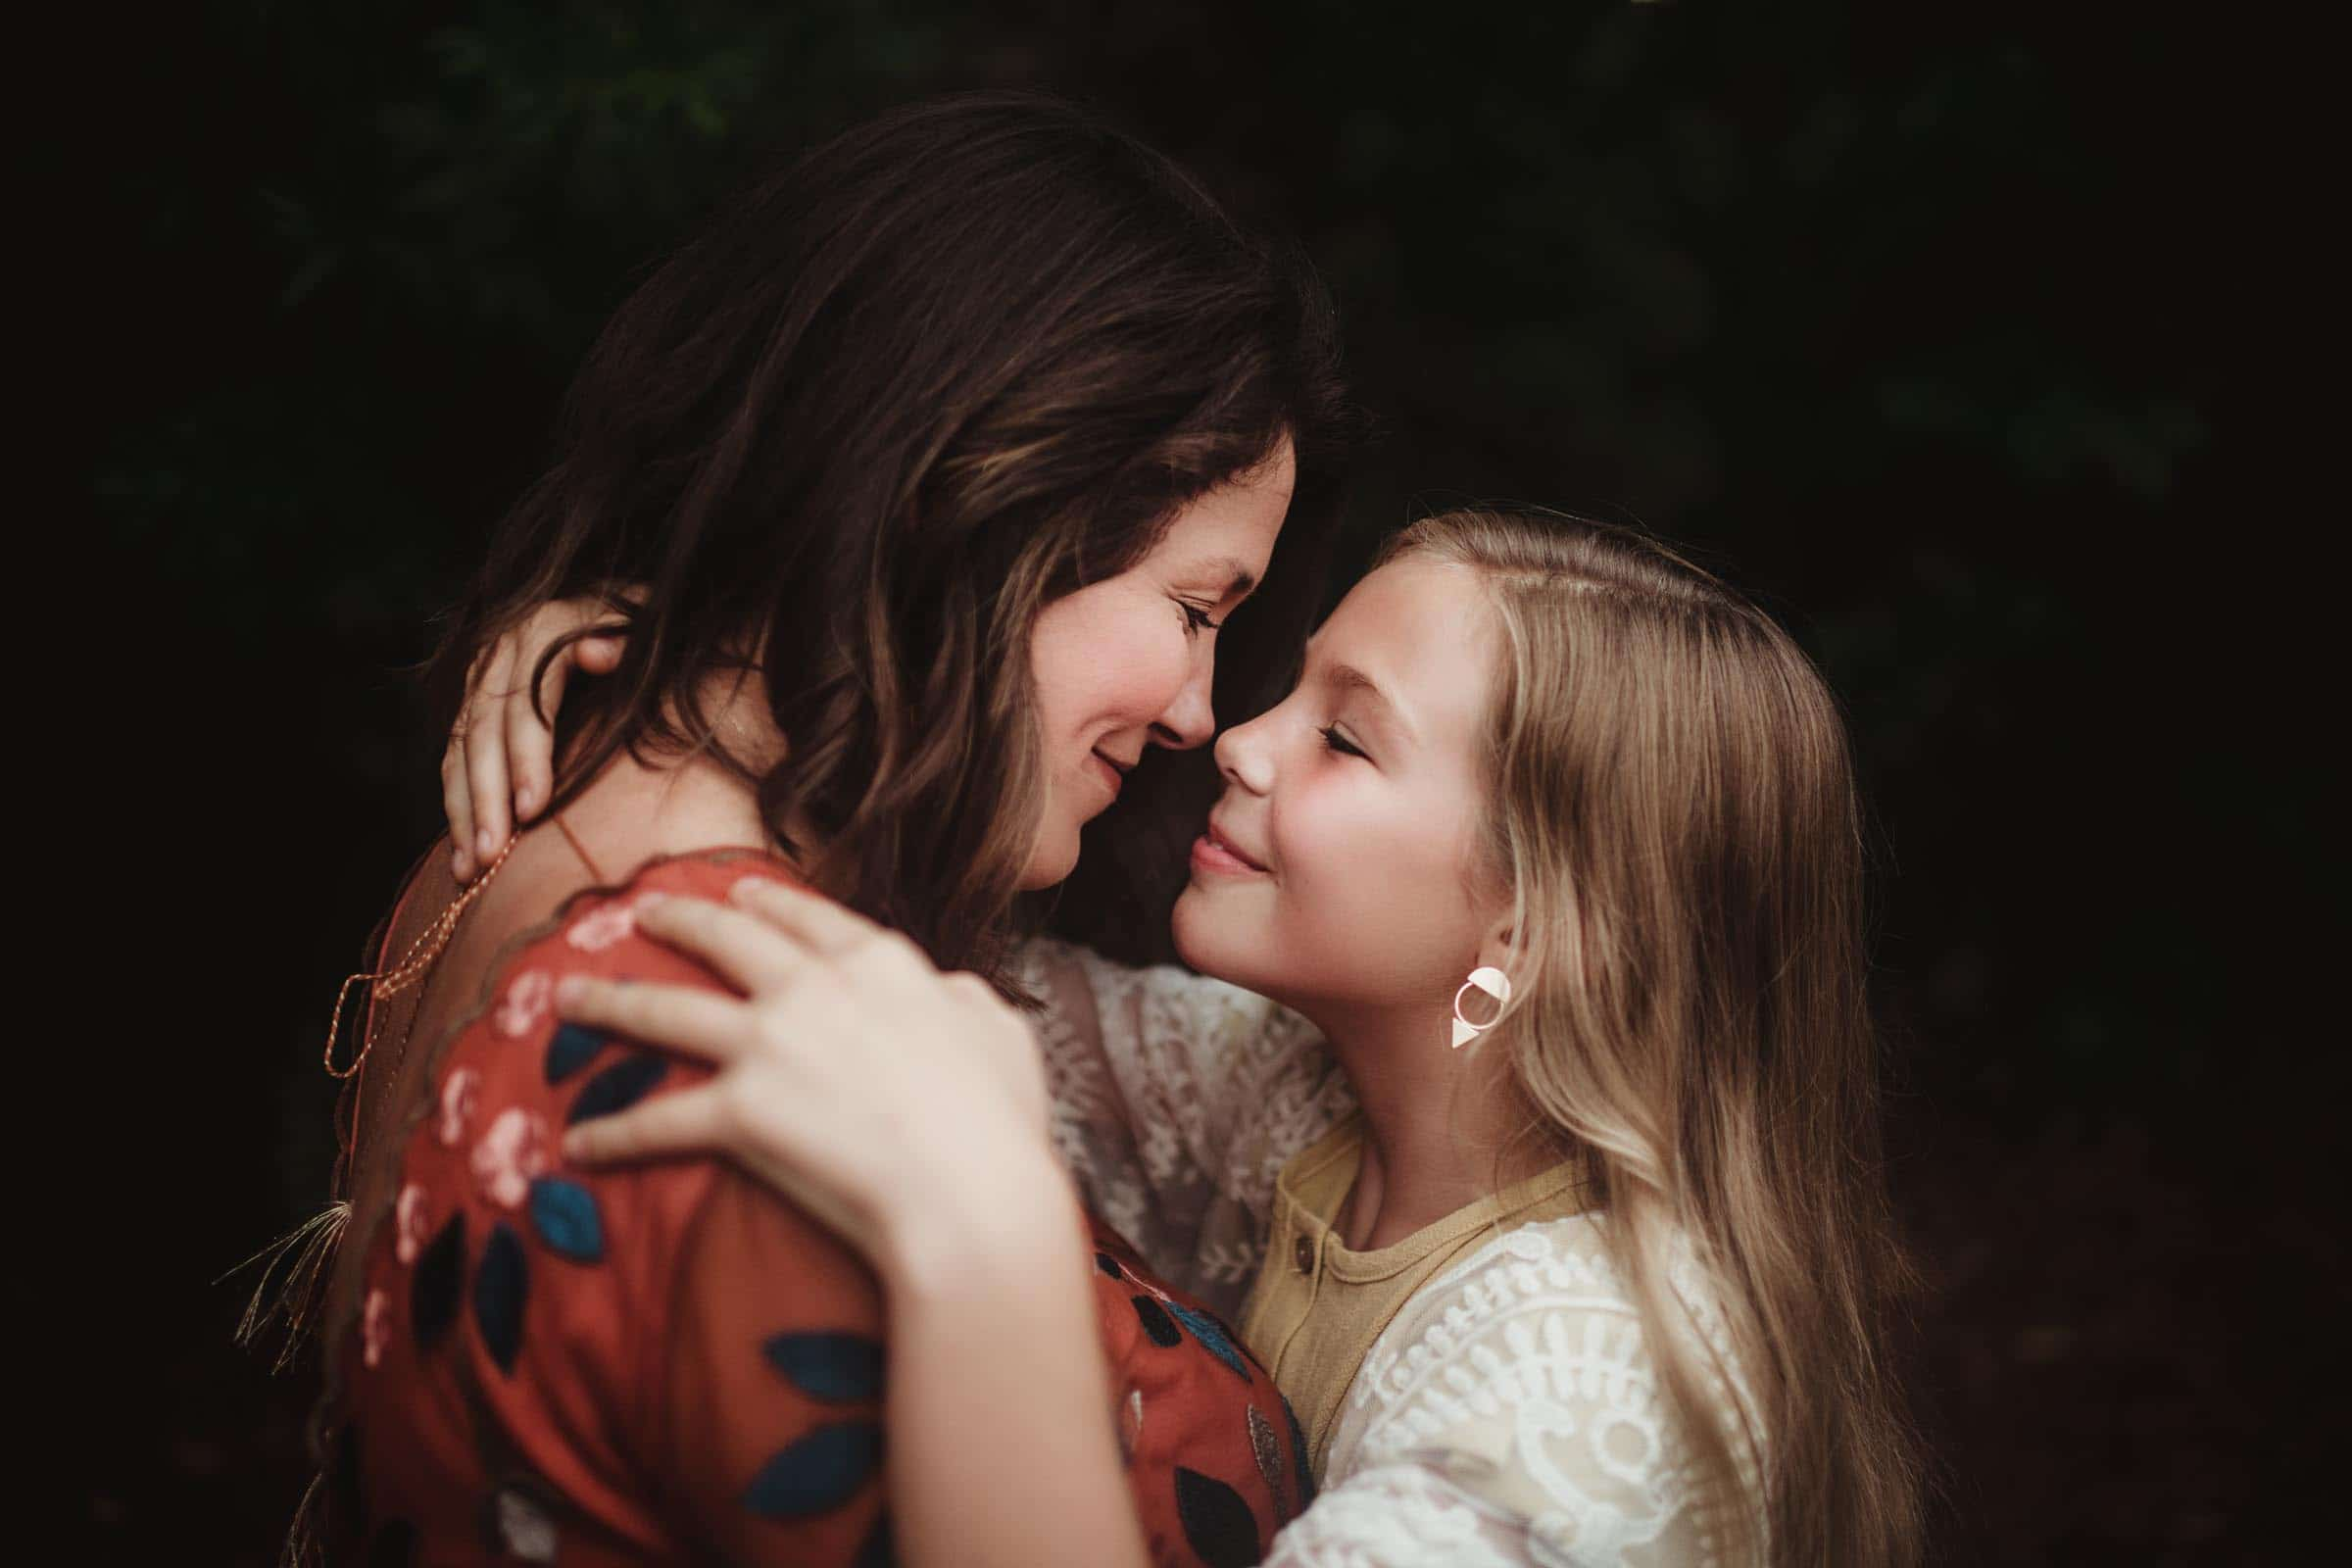 Mom and Daughter Looking at Each Other